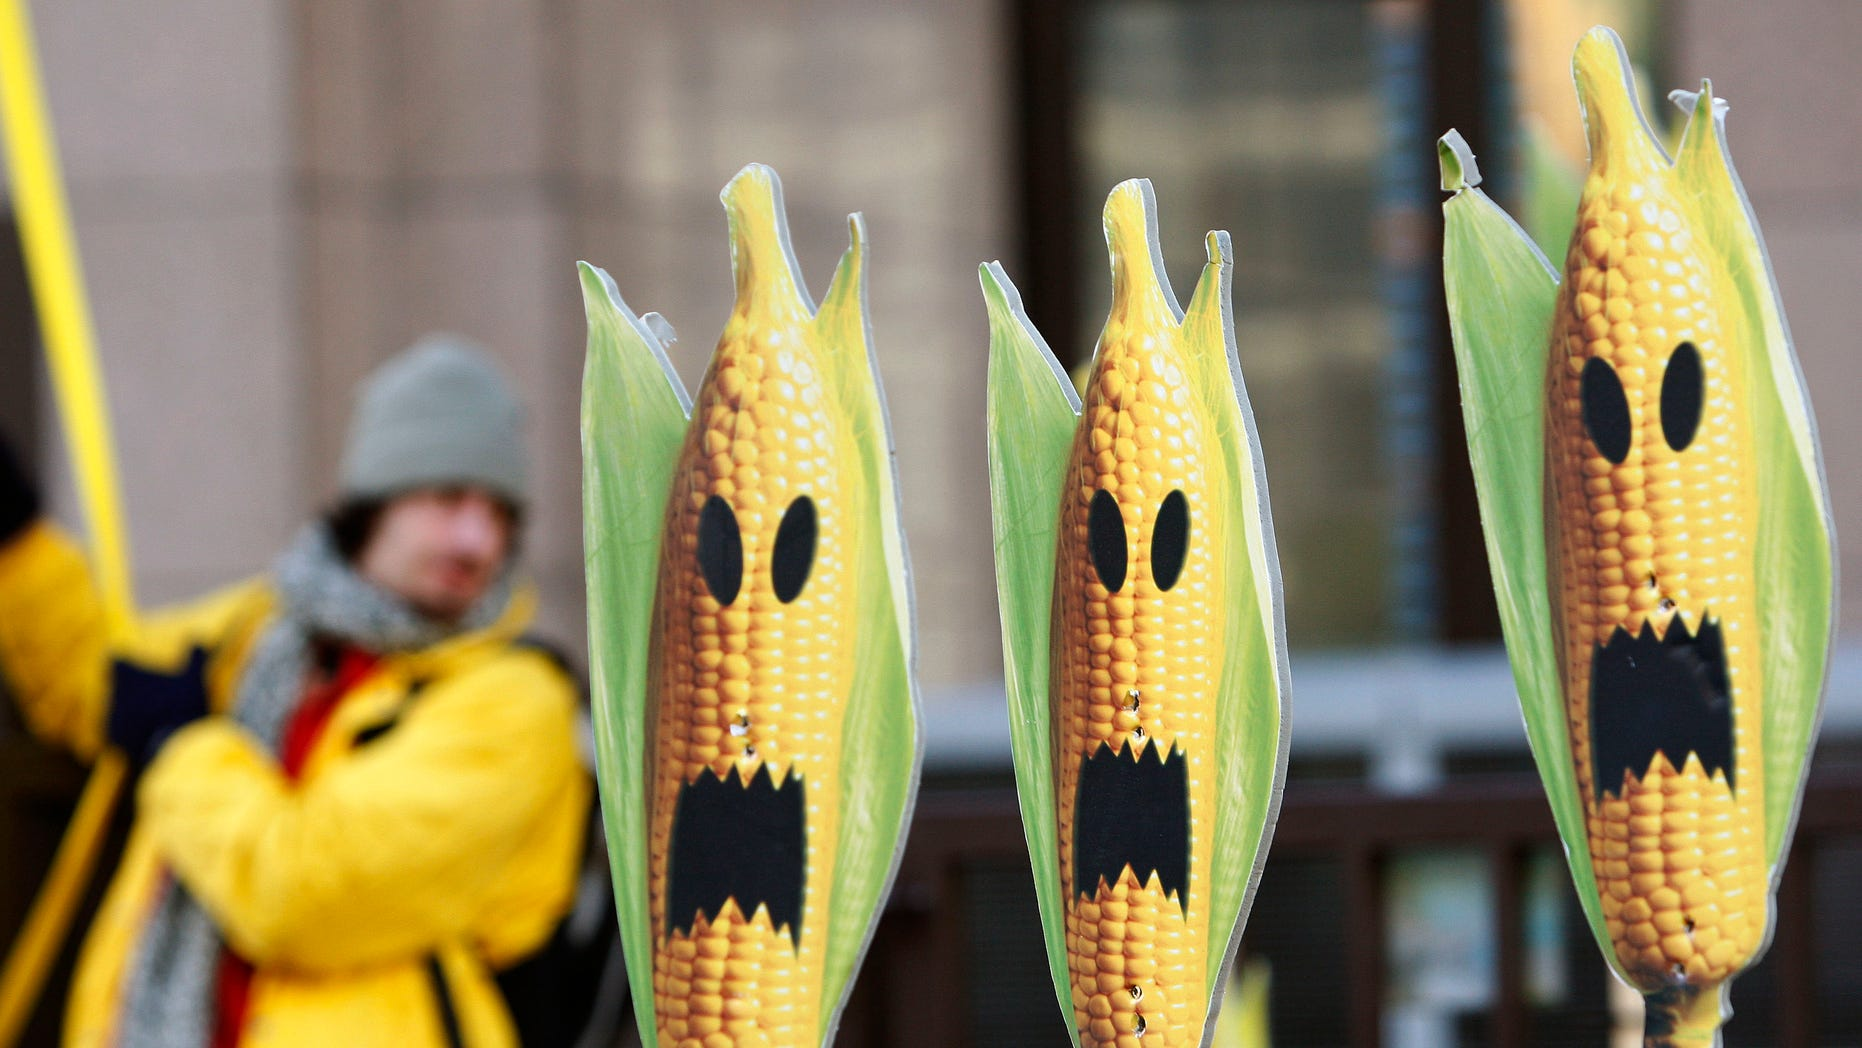 FILE: November 24, 2008: A Greenpeace activist displays signs that symbolize genetically modified maize crops, during a protest in front of the European Union headquarters in Brussels.